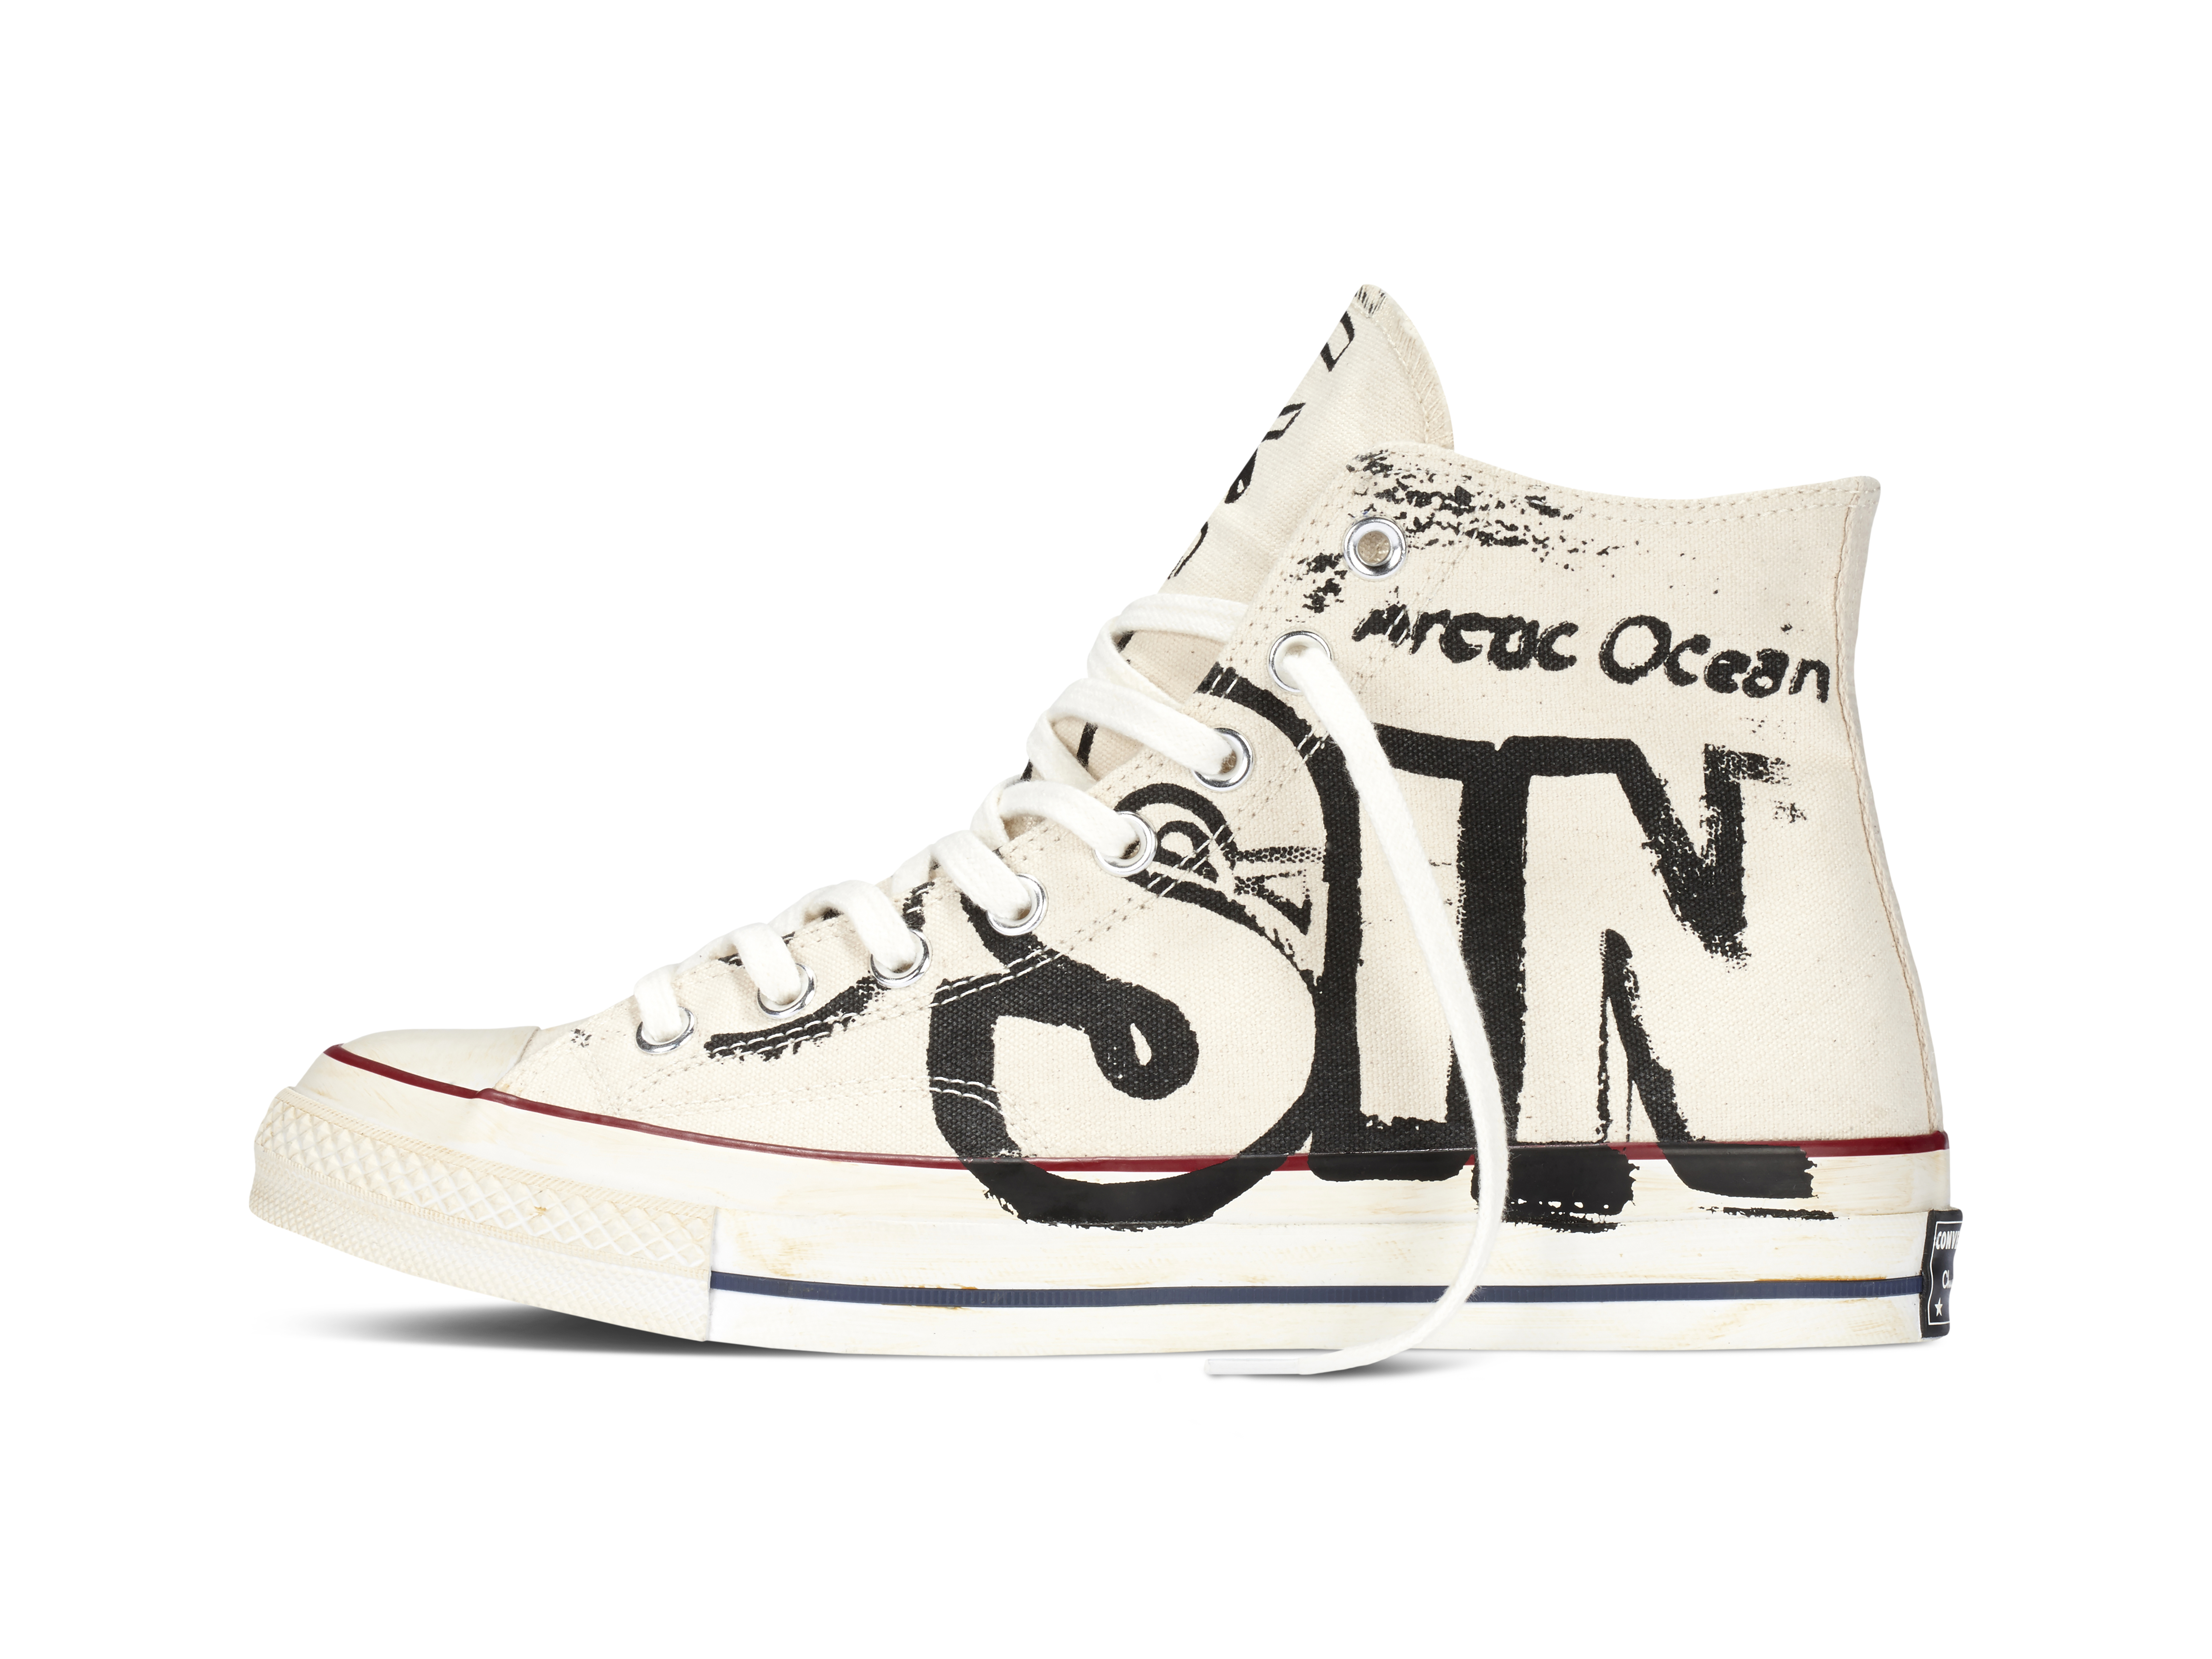 2718 PR Warhol lateral0011 - #STYLEWATCH: Converse x Andy Warhol Limited Edition #Sneaker @Converse @thewarholmuseum